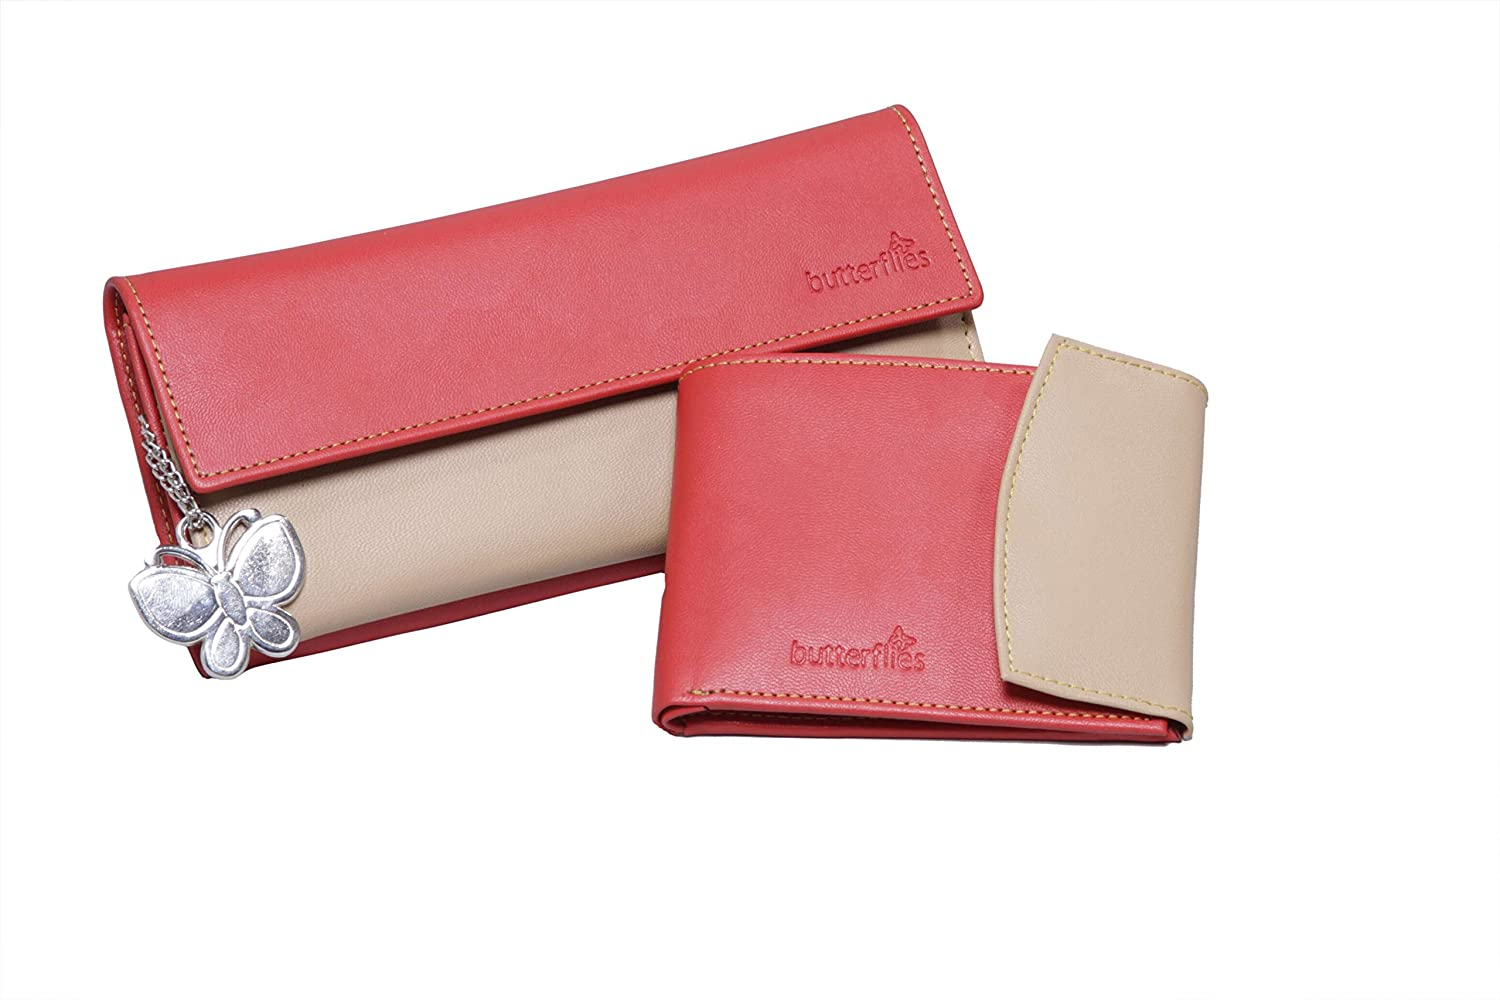 Butterflies Women's Wallet (Red and Beige) (BNS C019)